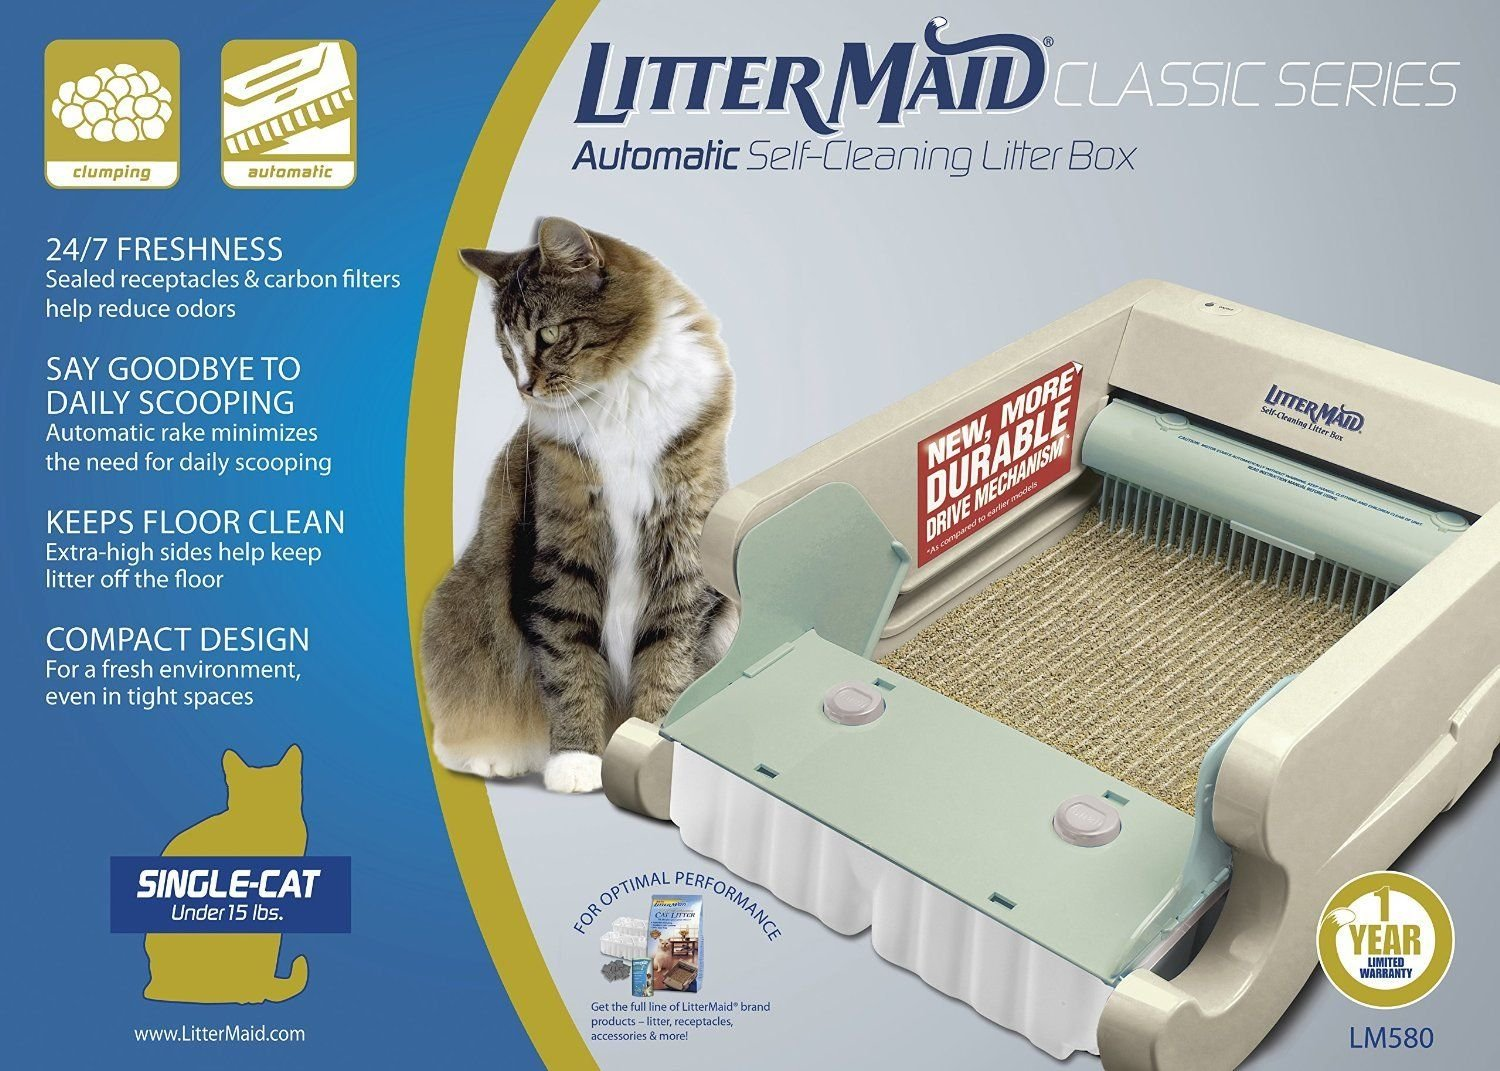 Littermaid LM680C Automatic Self-Cleaning Classic Litter Box (LM680C) Removes Waste And Controls Offensive Odors Perfect For Single Or Multi Cat Households by LitterMaid